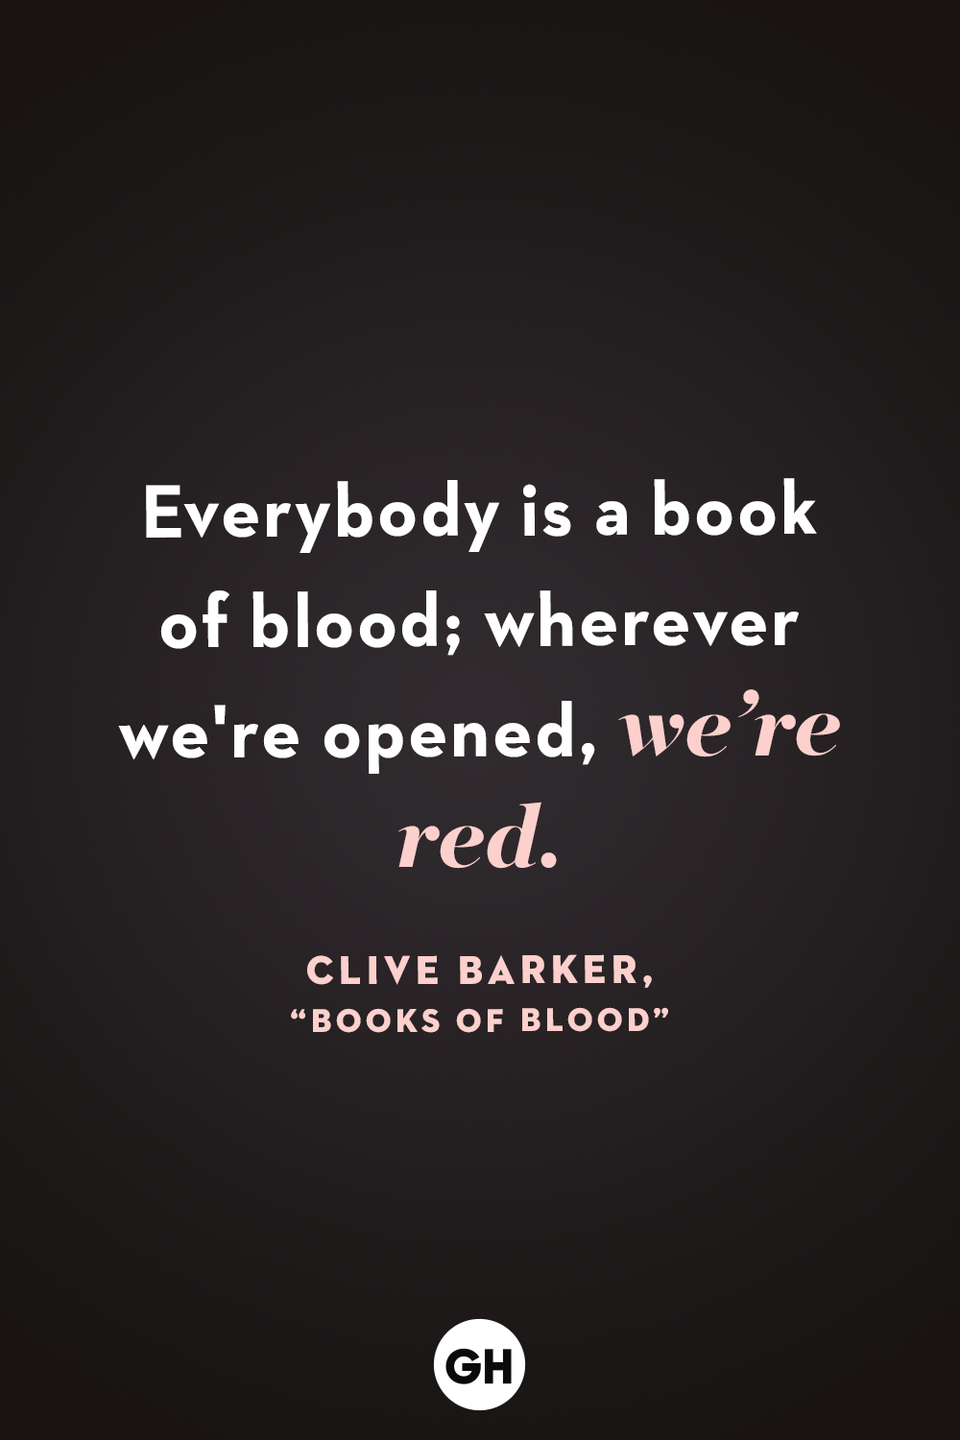 <p>Everybody is a book of blood; wherever we're opened, we're red.</p>